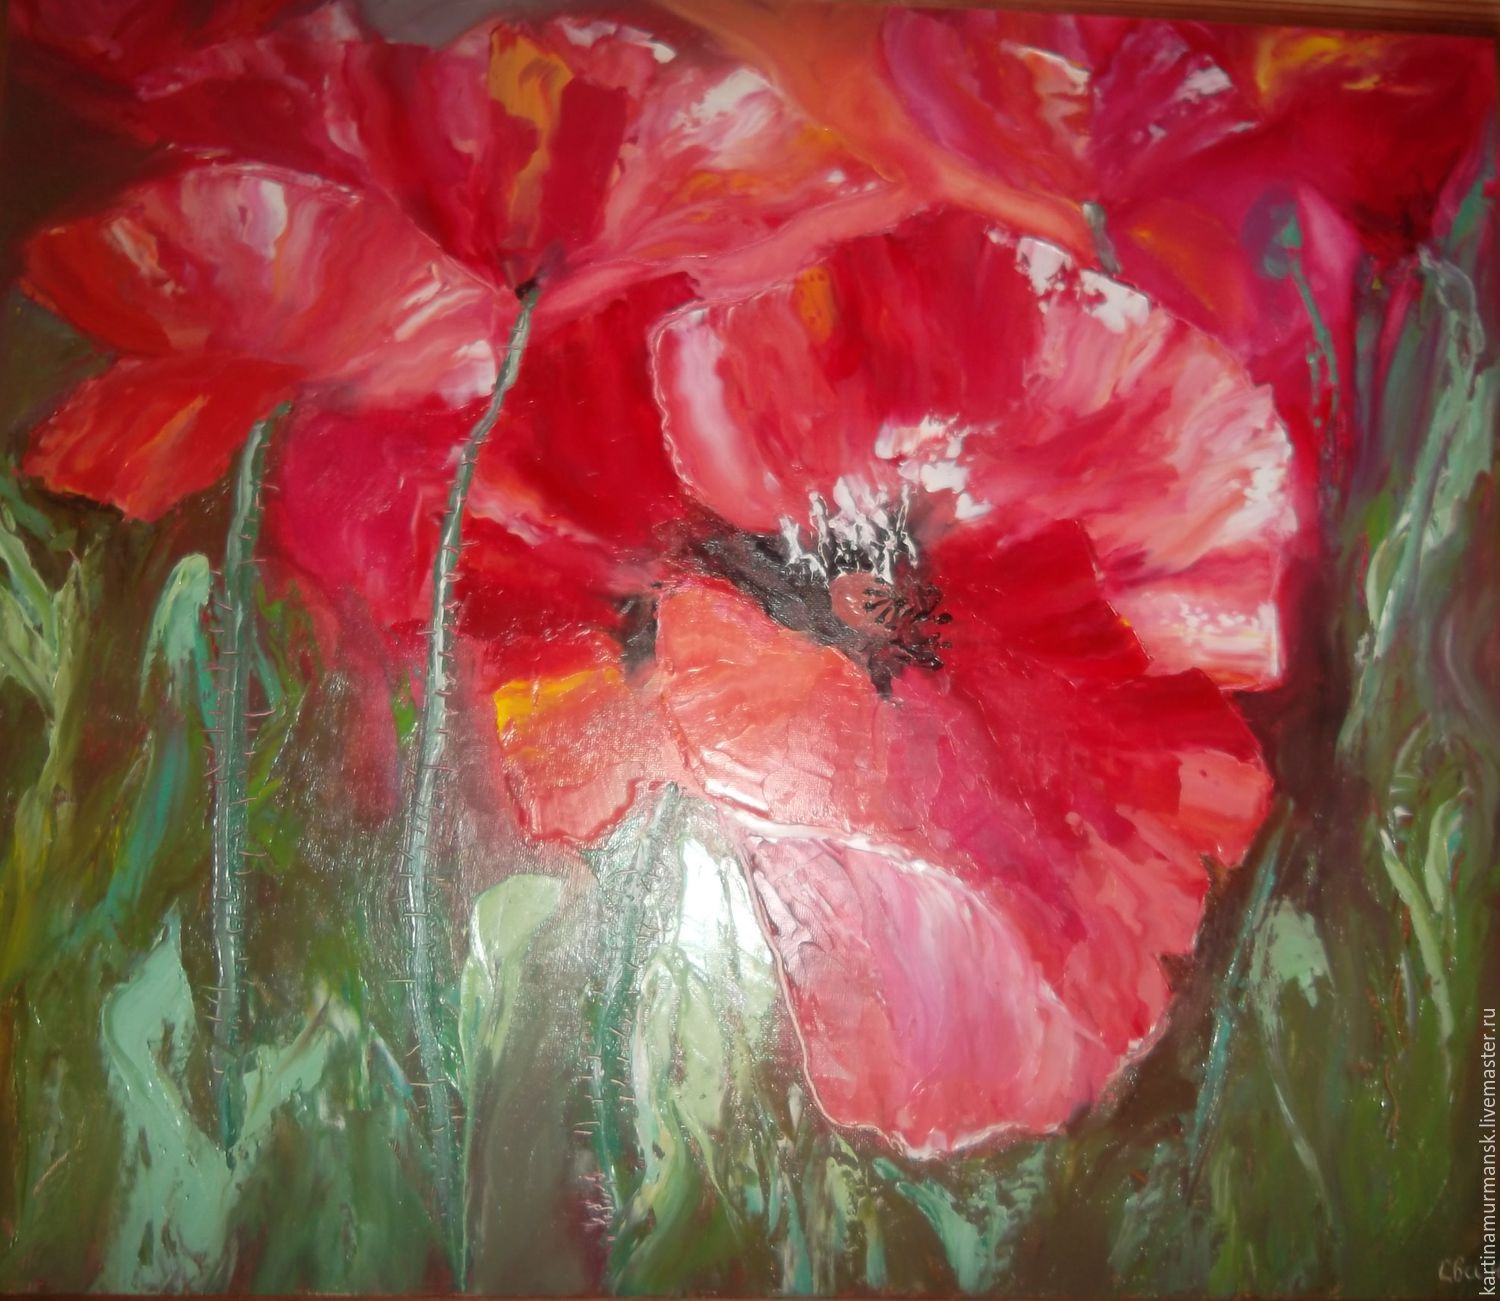 Oil painting flowers 50/60 'Poppies as a gift', Pictures, Murmansk,  Фото №1